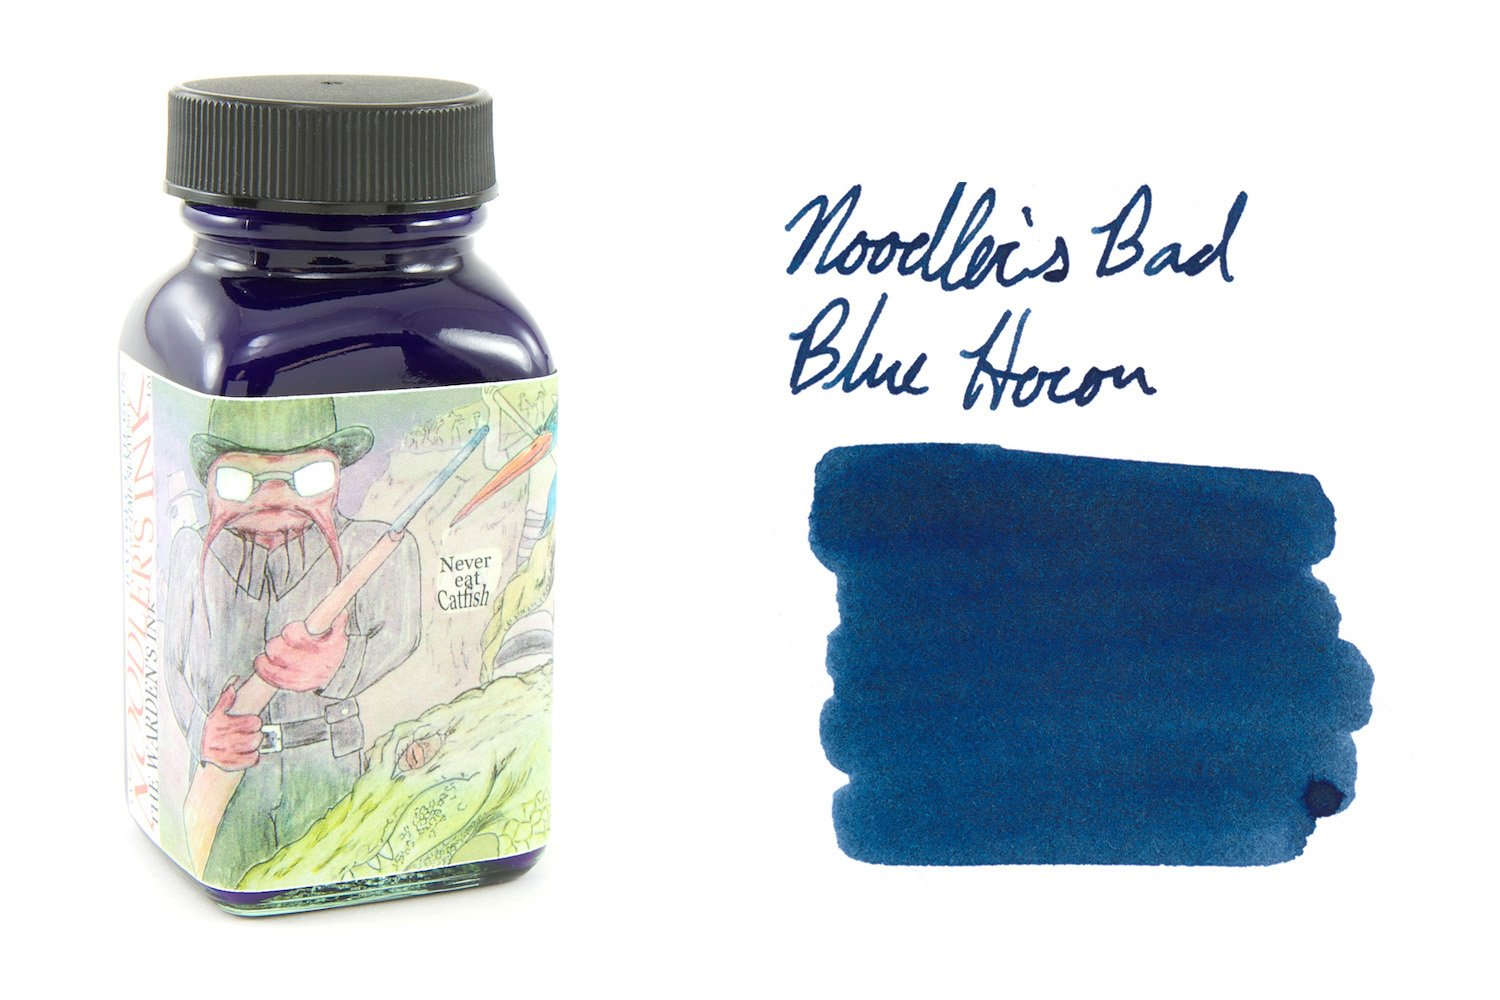 Noodler's Bad Blue Heron - 3oz Bottled Ink